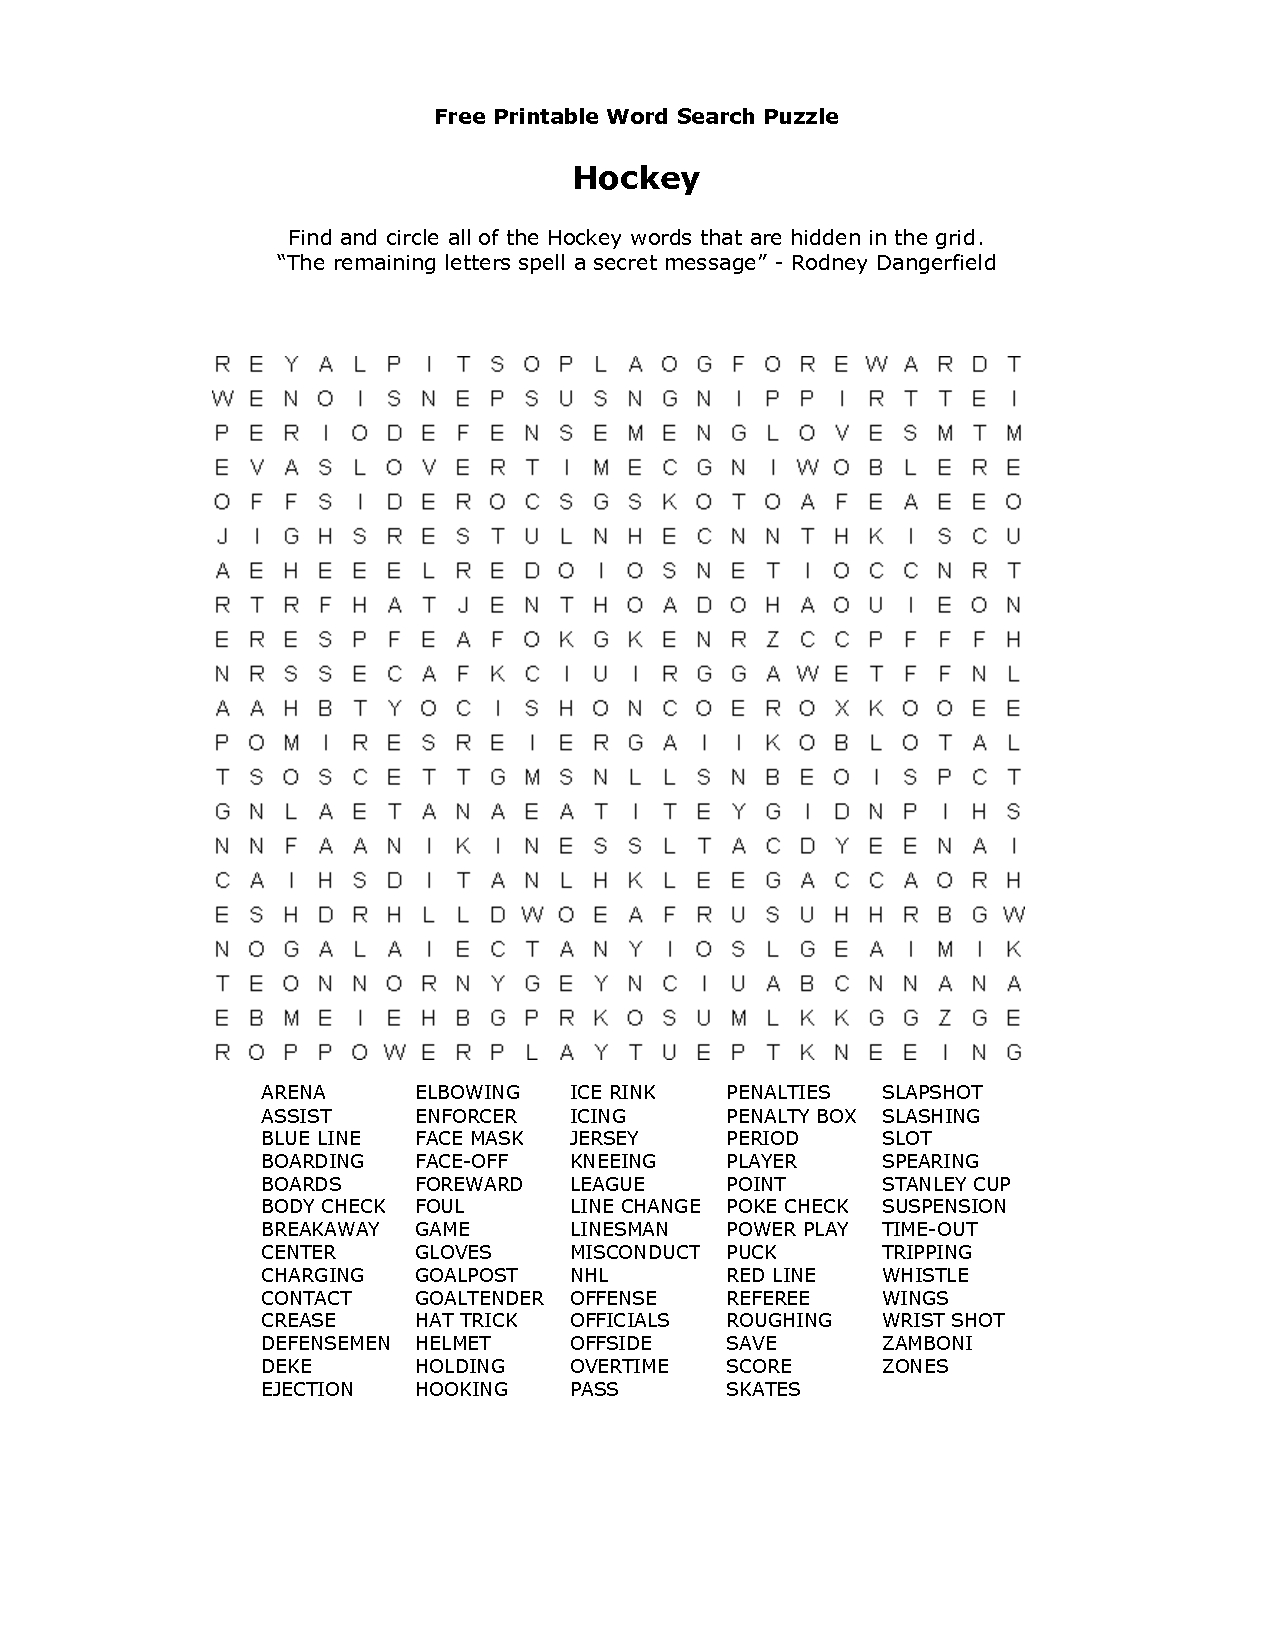 Free Printable Word Searches | Kiddo Shelter | Games | Free - Free Printable Word Searches For Adults